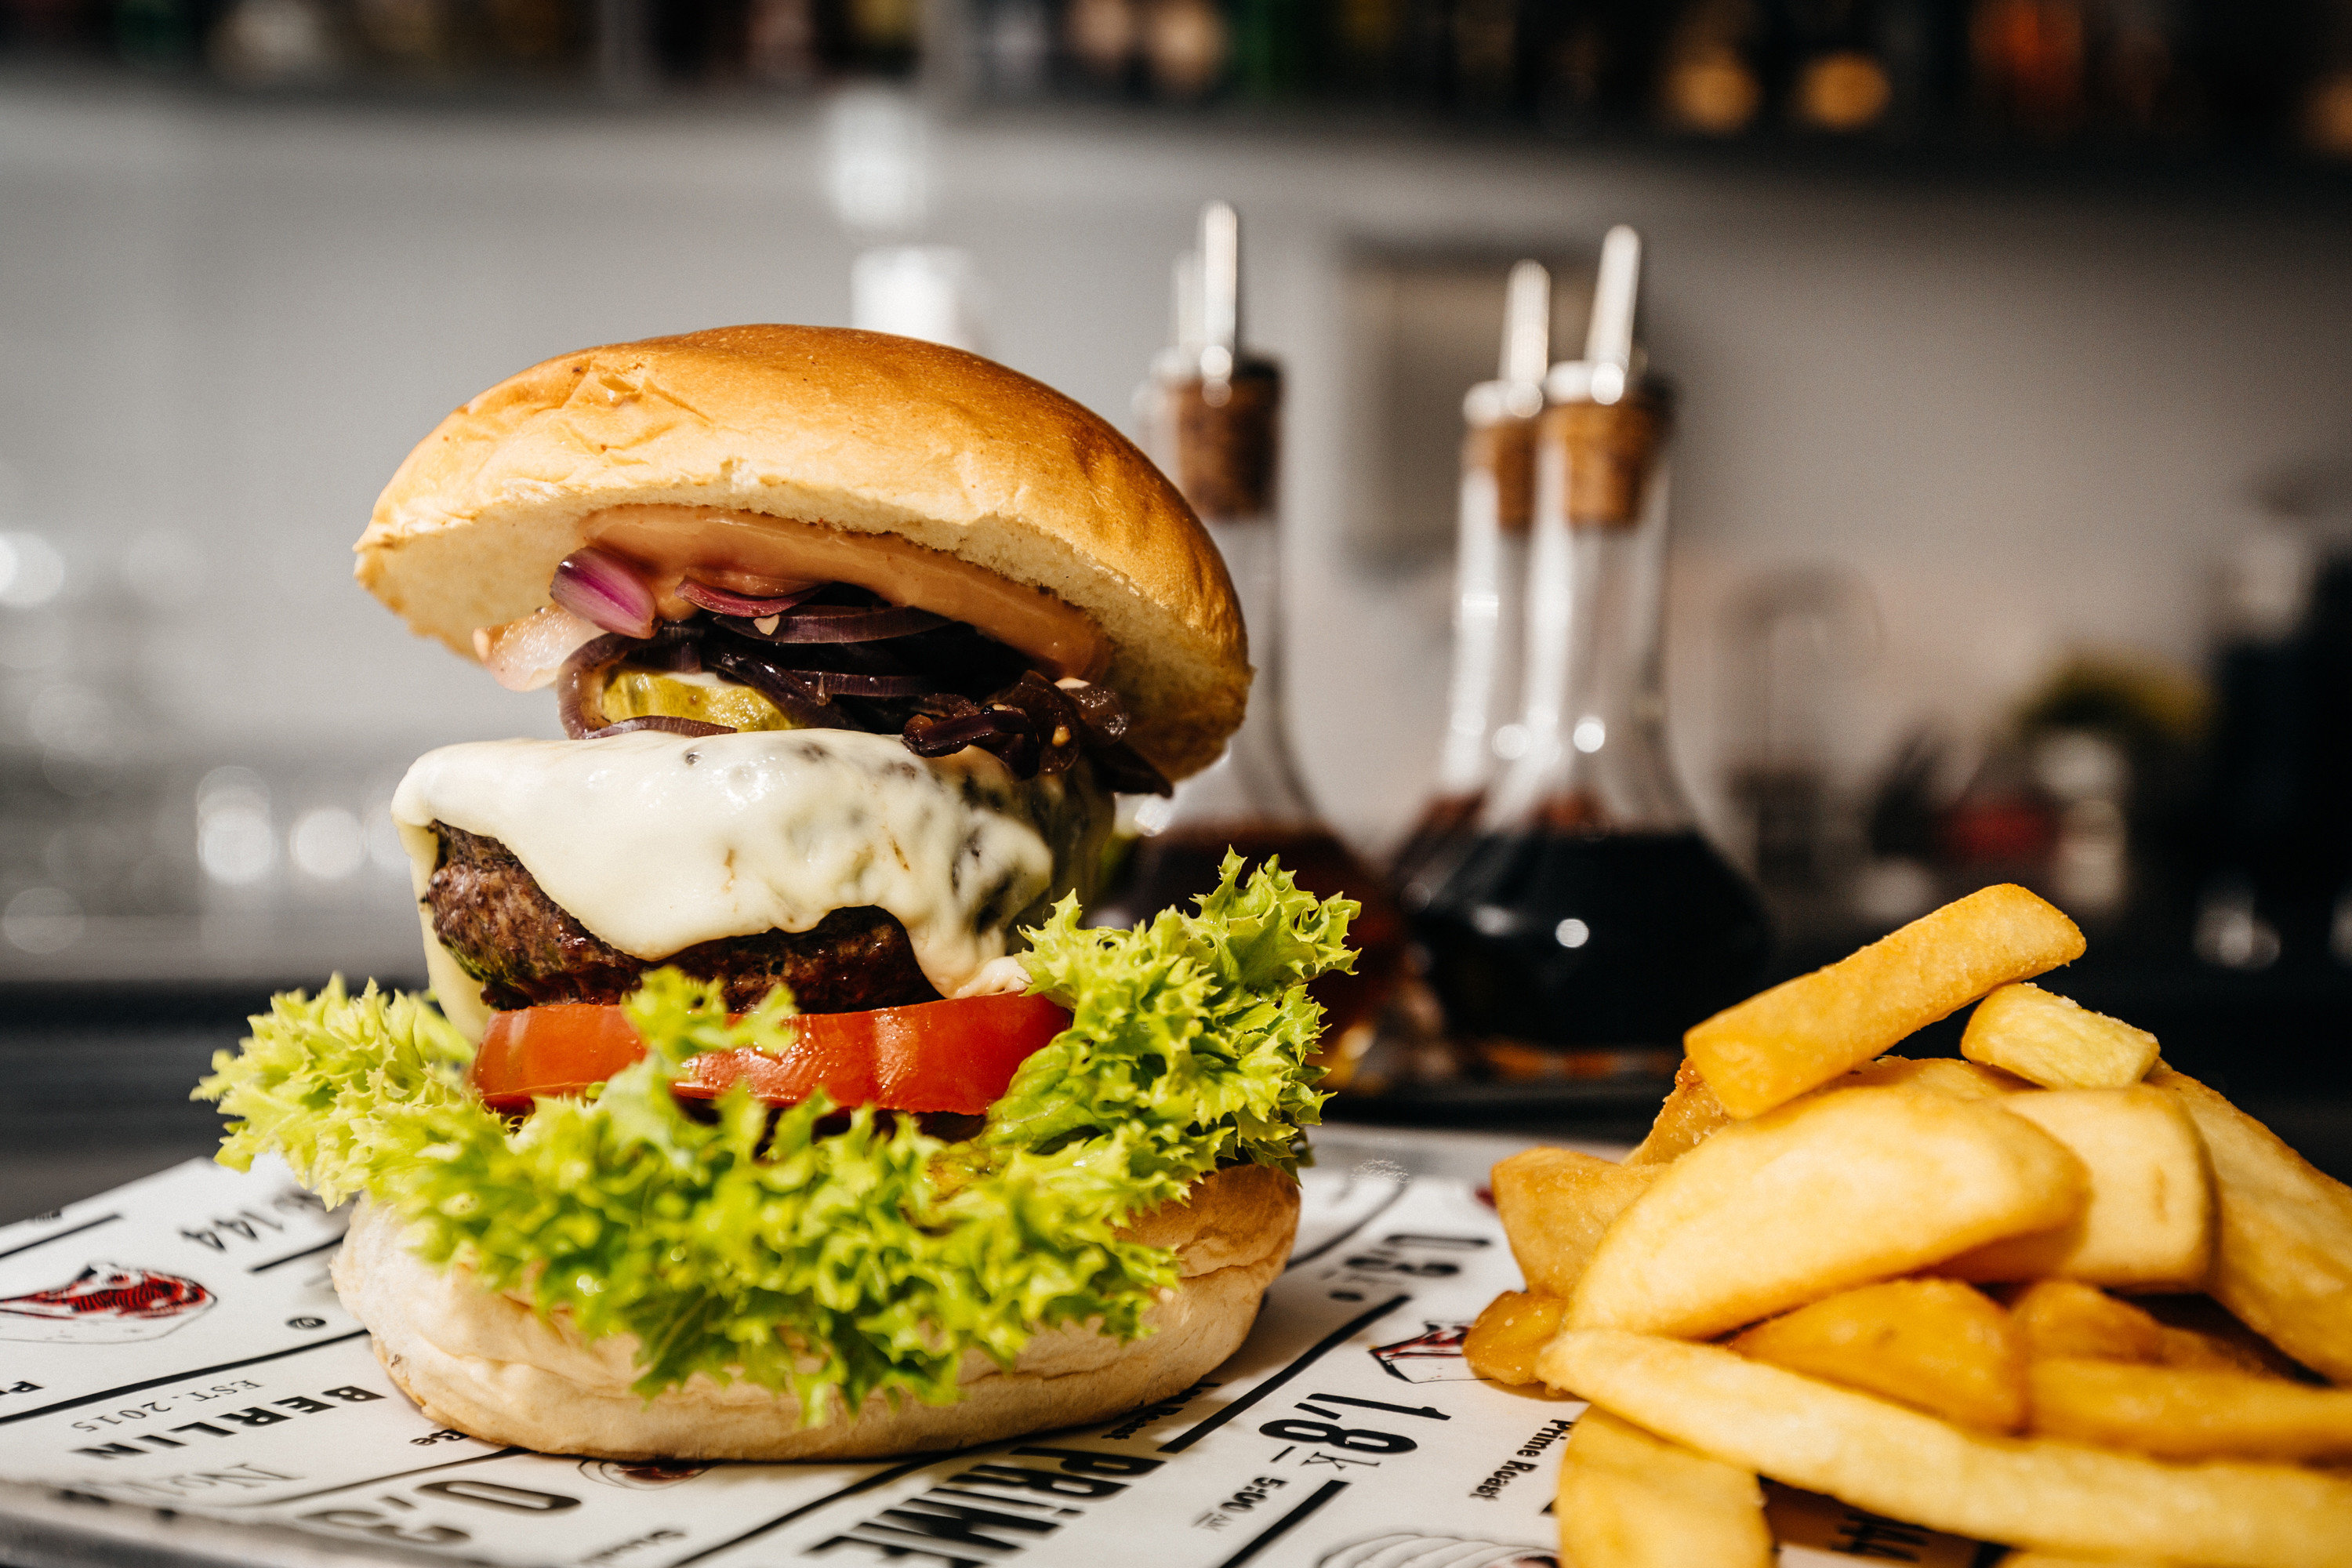 Berlin Boutique Hotels Germany Hotels Luxury Travel food hamburger plate fries fast food snack food sandwich restaurant sense lunch cheeseburger brunch fast food restaurant tray french fries meat cuisine junk food potato